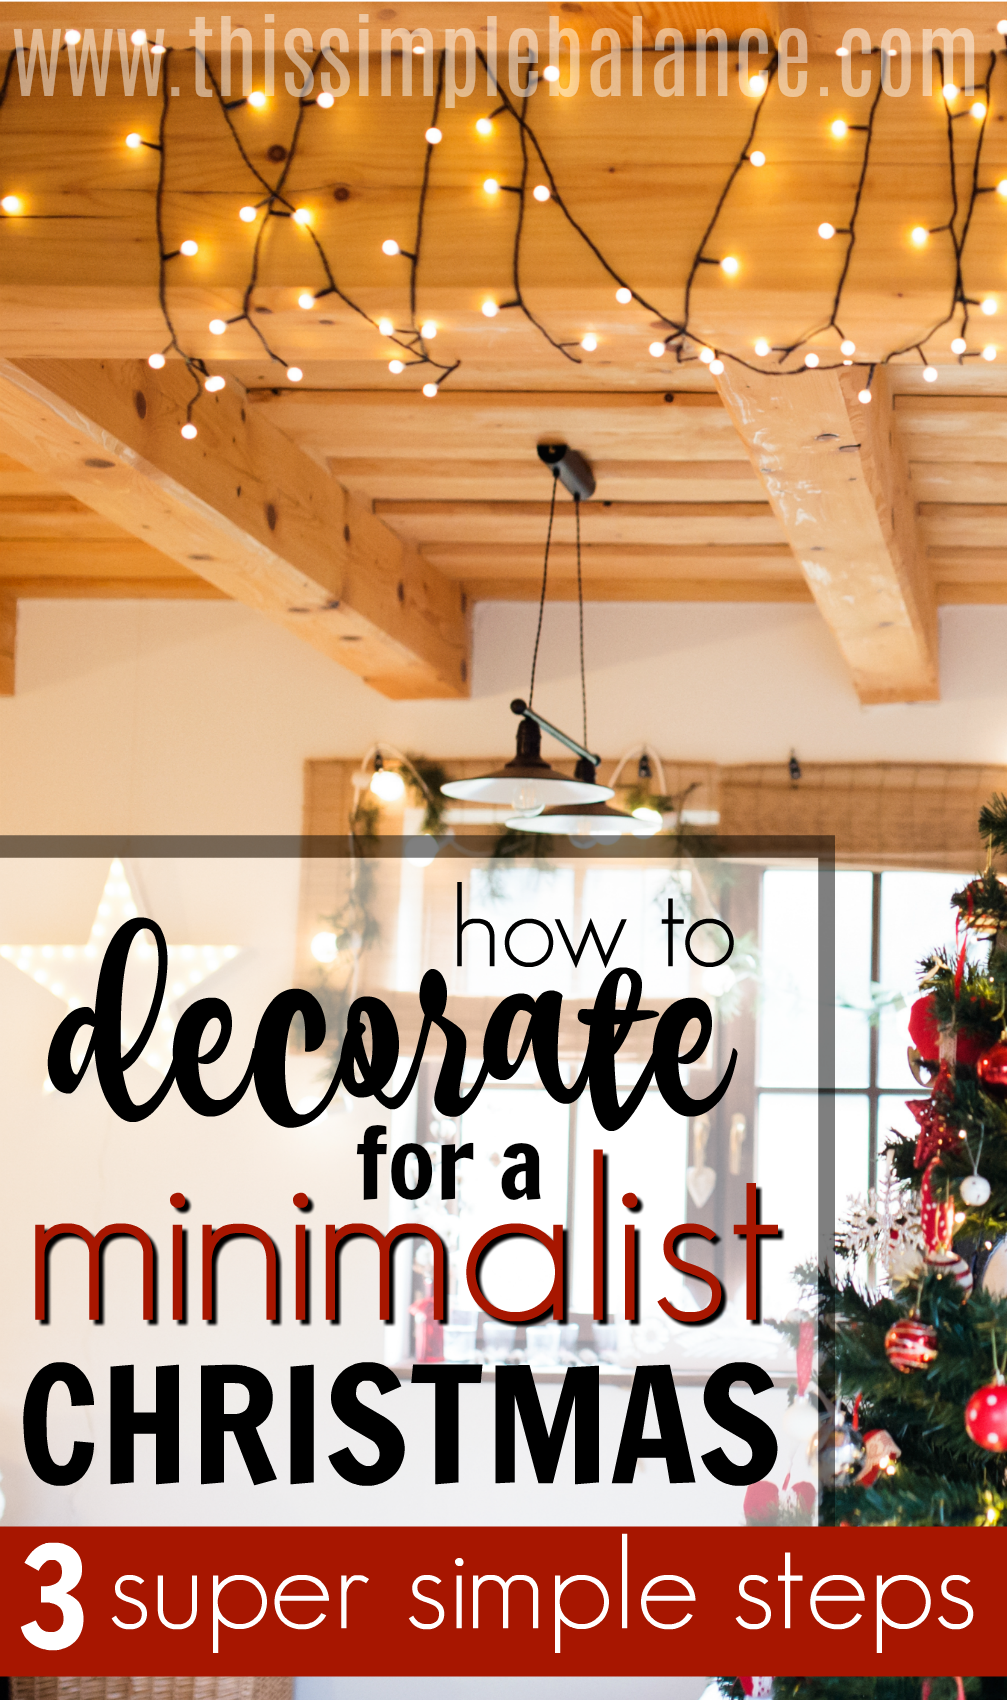 Wanting to decorate for Christmas minimalist style but not sure how to declutter the decorations you already have? Check out these super simple steps to simplifying your Christmas decorations (from a minimalist mom with kids) - you'll love Christmas even more. #simpleChristmas #minimalistChristmas #minimalismwithkids #minimalist